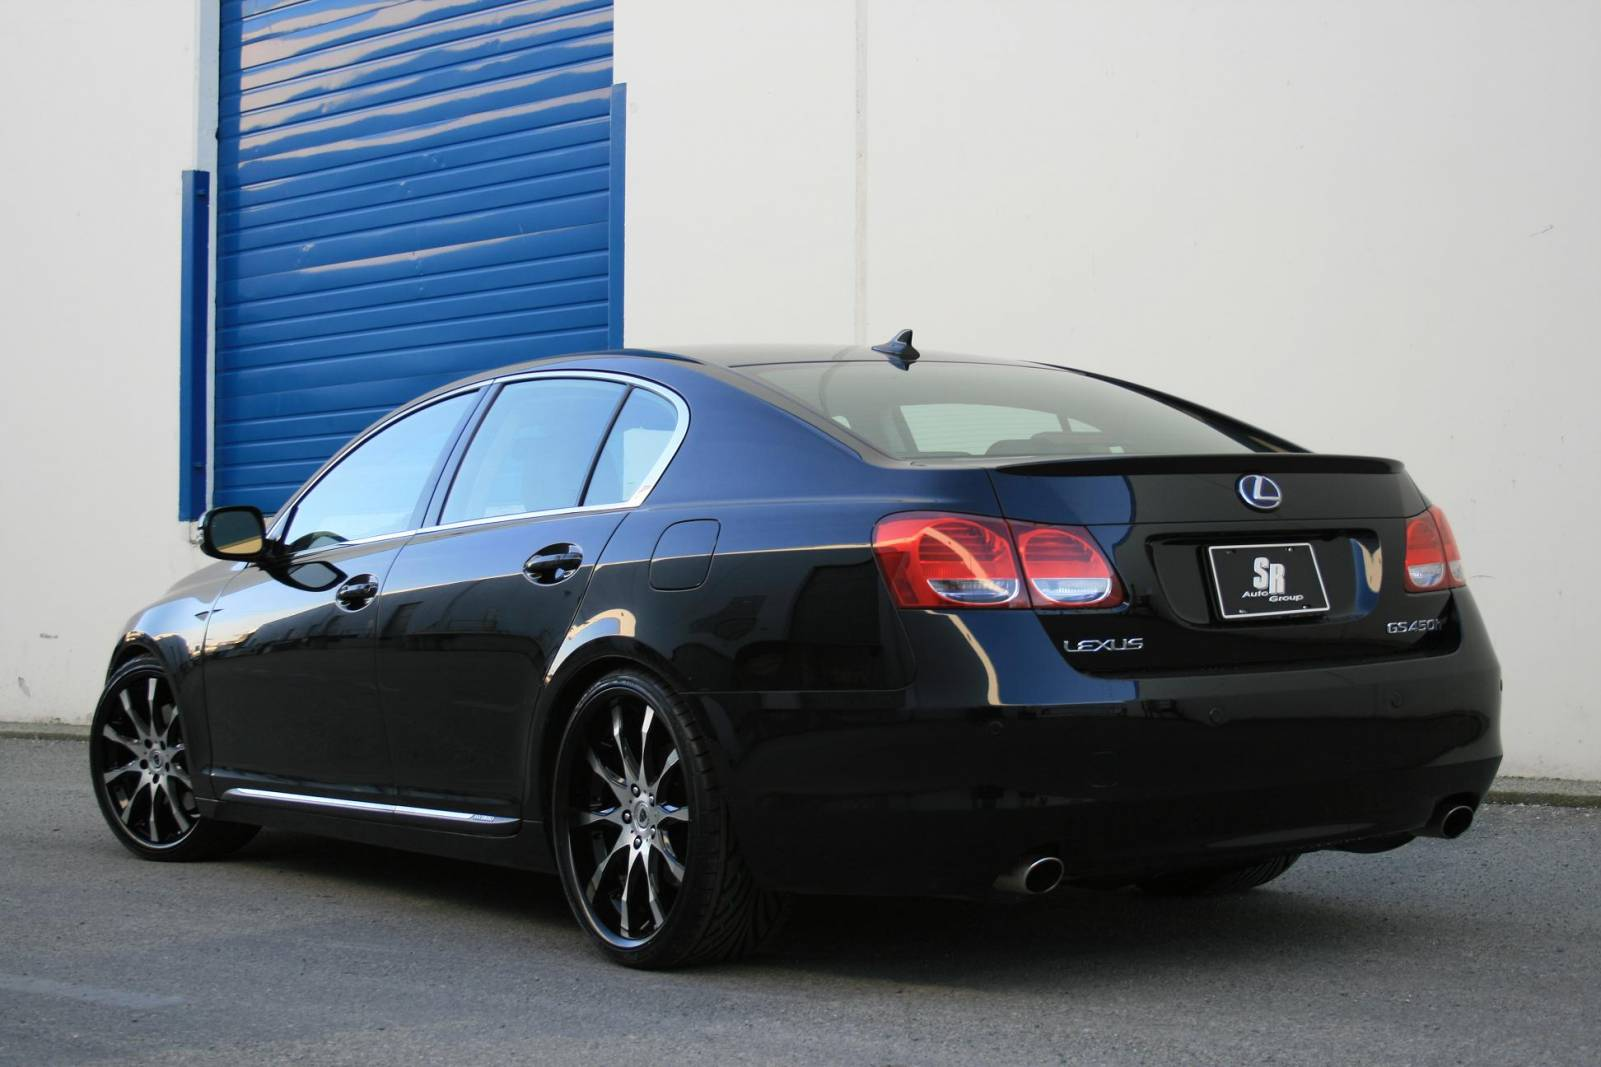 lexus gs 350 custom wheels work schwert sc2 20x8 5 et 38. Black Bedroom Furniture Sets. Home Design Ideas